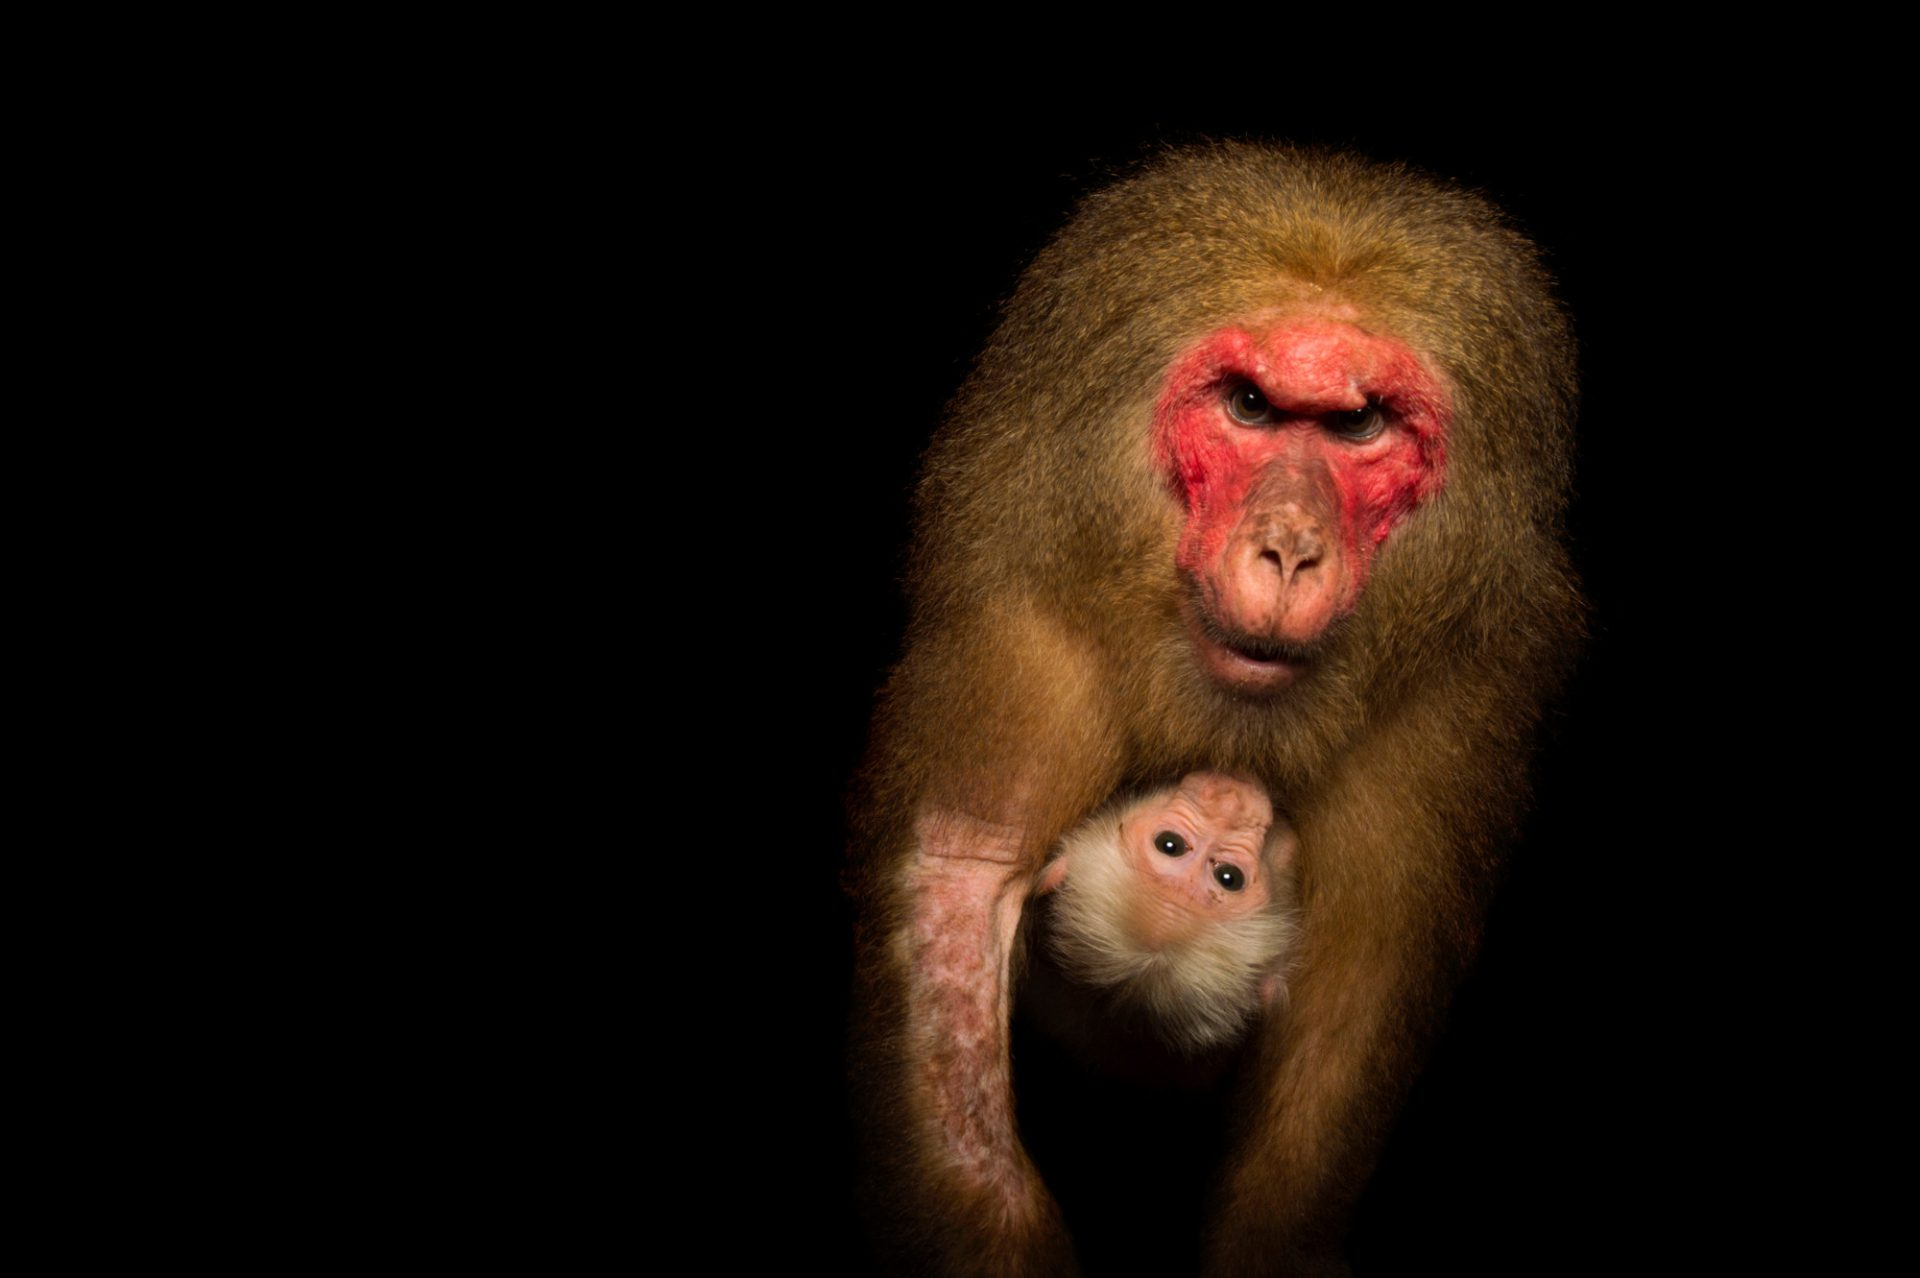 Photo: Stump-tailed macaque (Macaca arctoides) mother and baby, at the Assam State Zoo cum Botanical Garden in India.